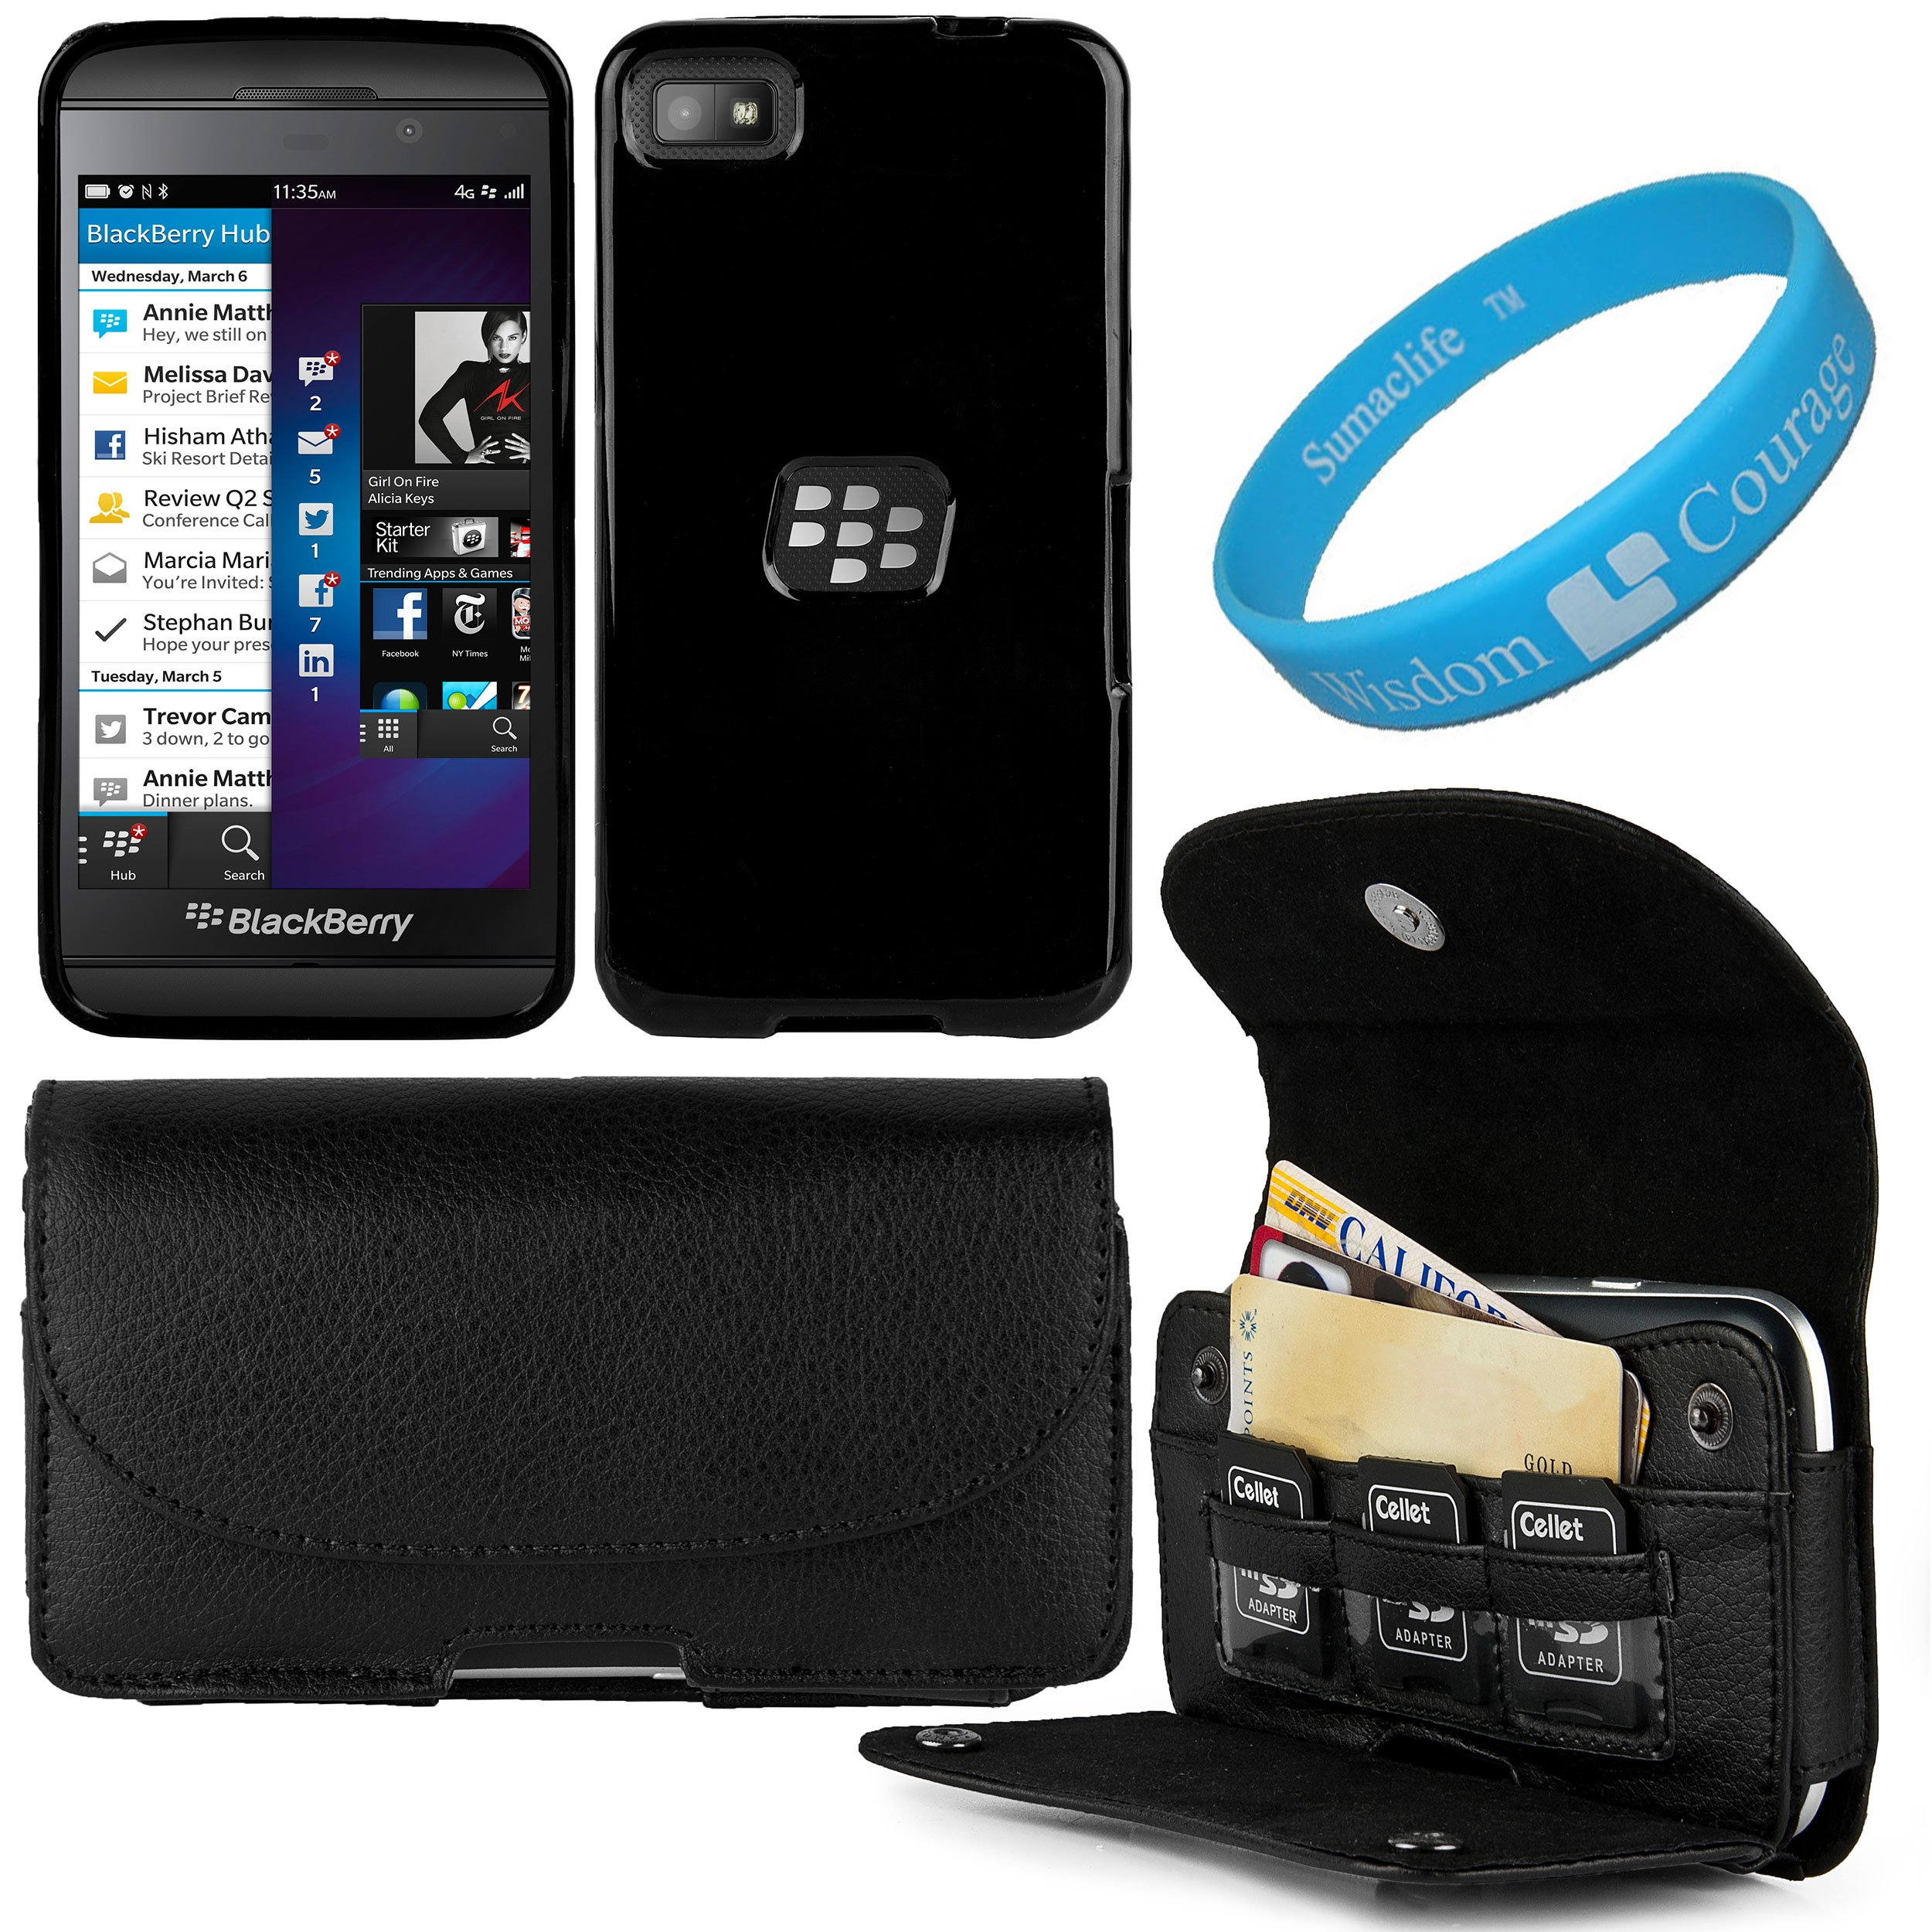 Black Executive Faux Leather Wallet Holster Case with Credit Card Slots for BlackBerry Z10 Smart Phone and Black Premium TPU Skin Cover Case and SumacLife TM Wisdom Courage Wristband